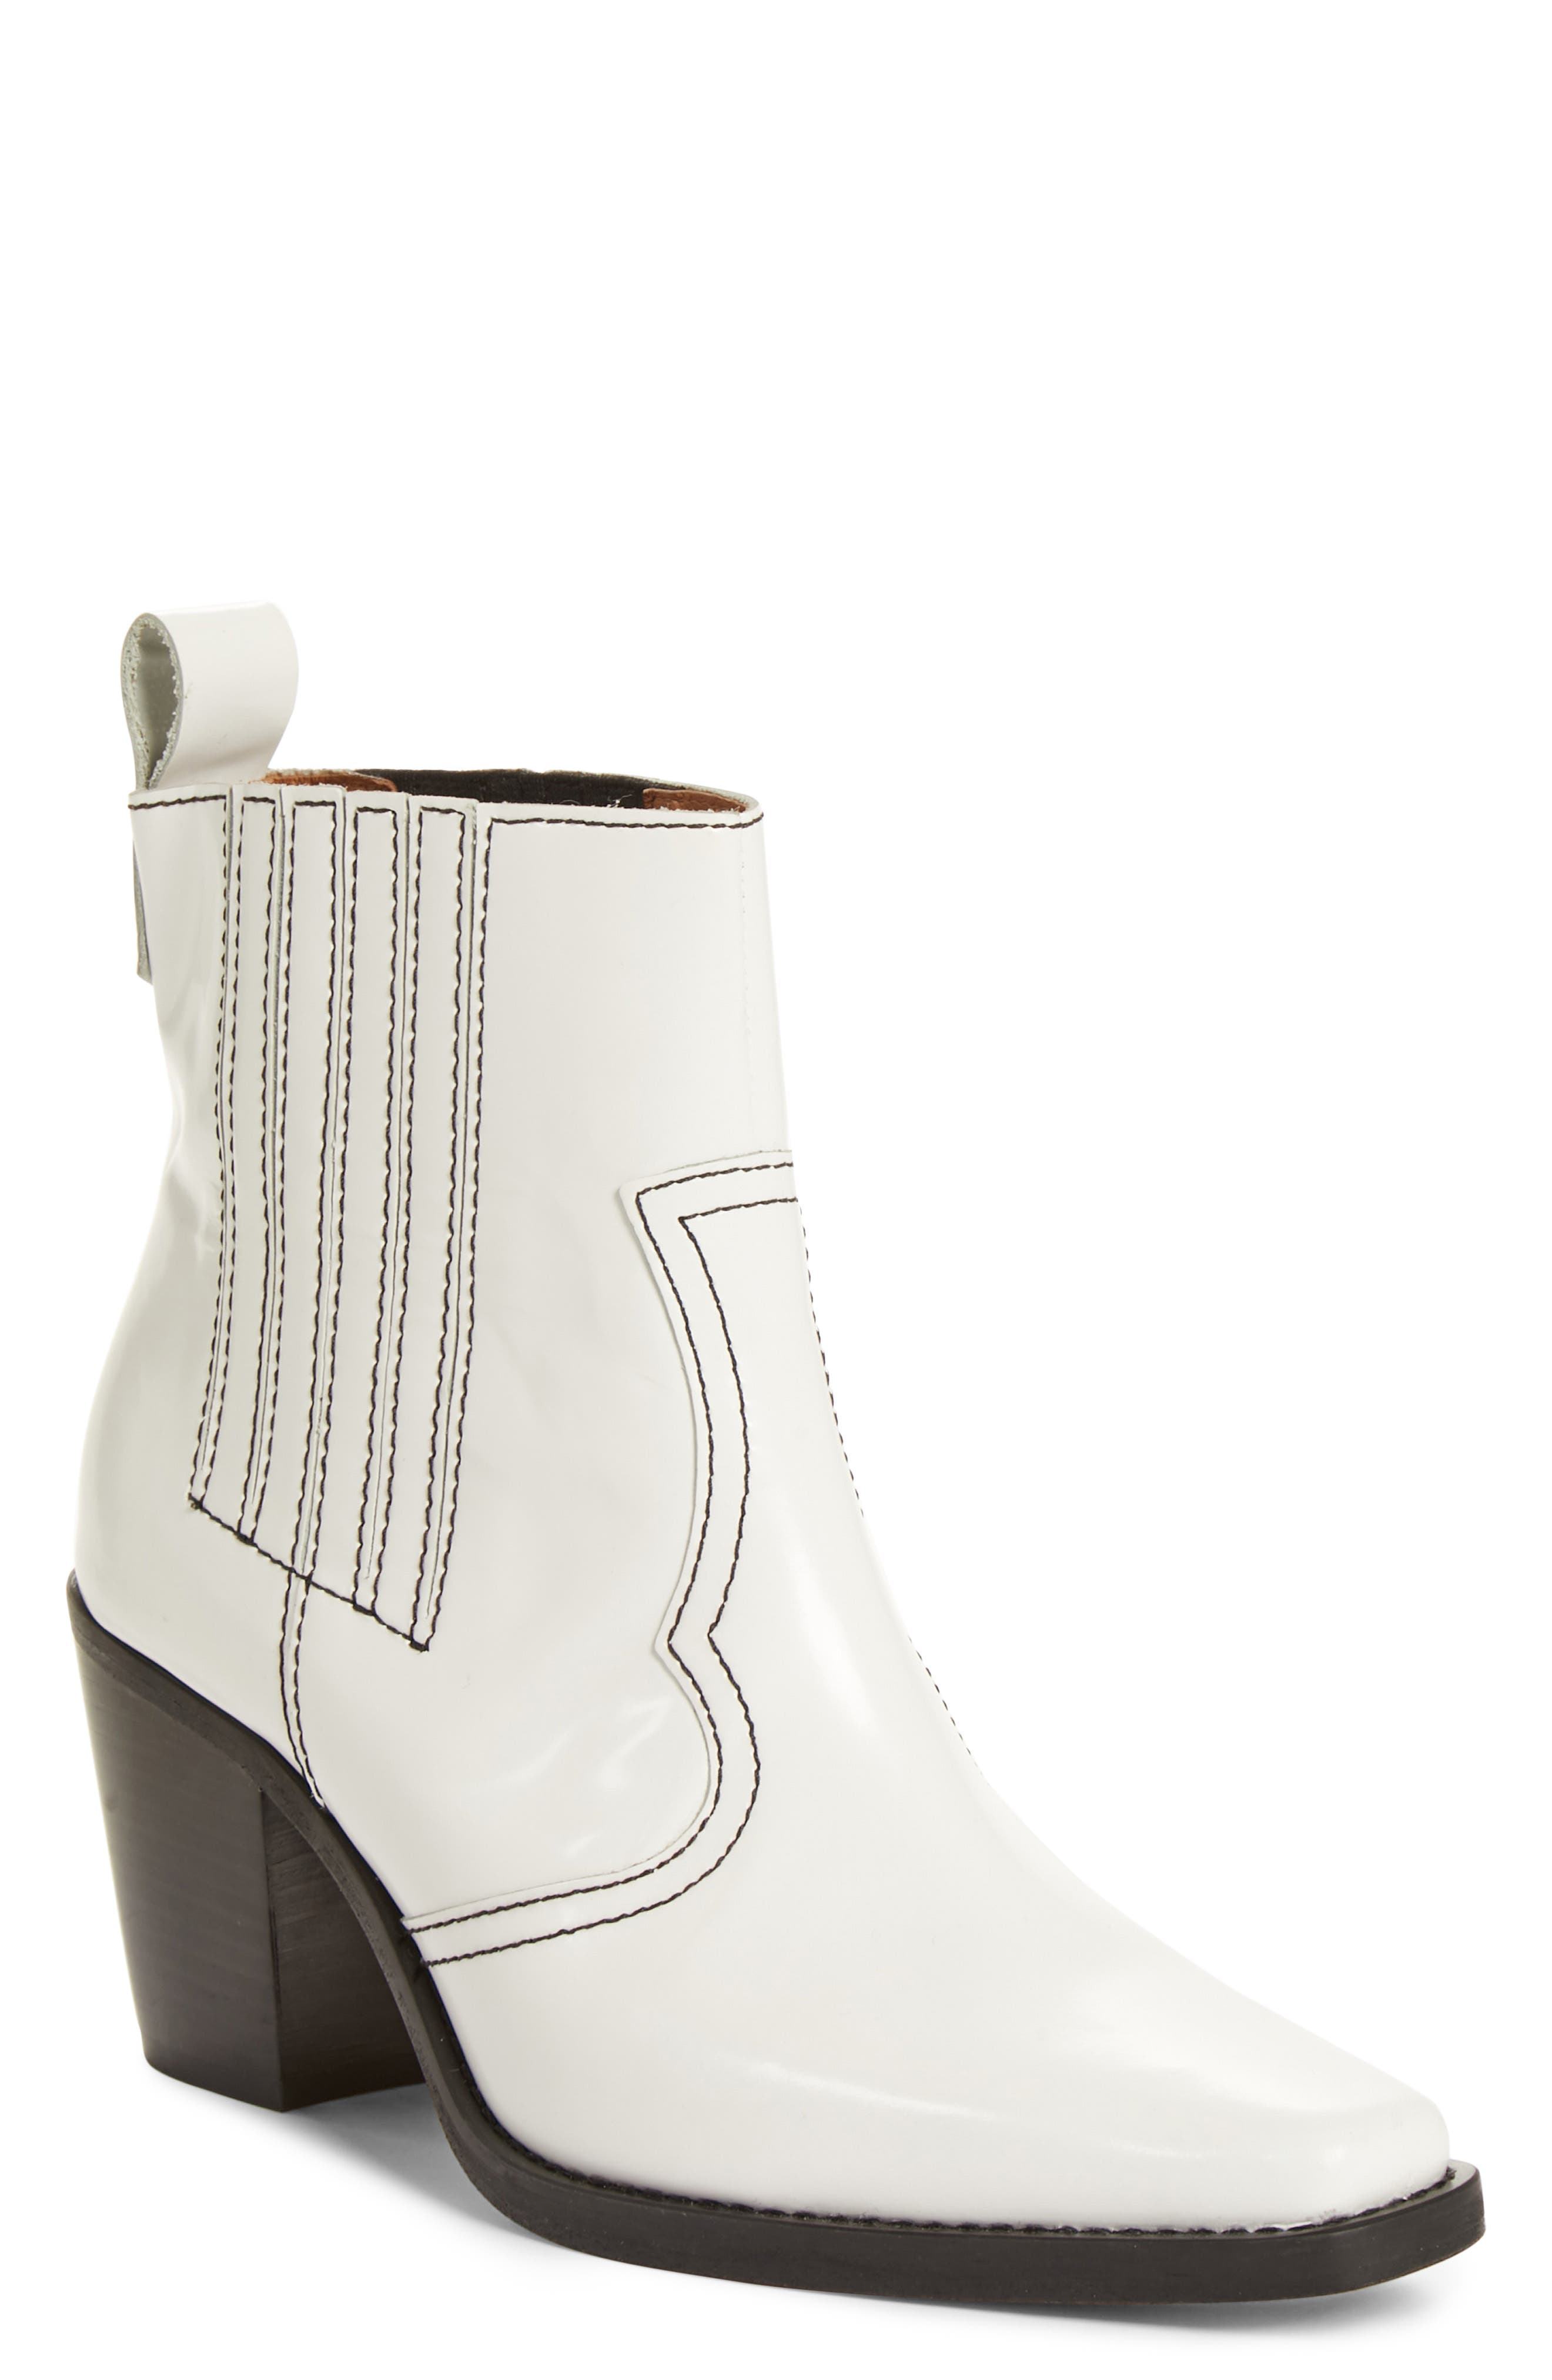 Western Bootie,                         Main,                         color, BRIGHT WHITE 151